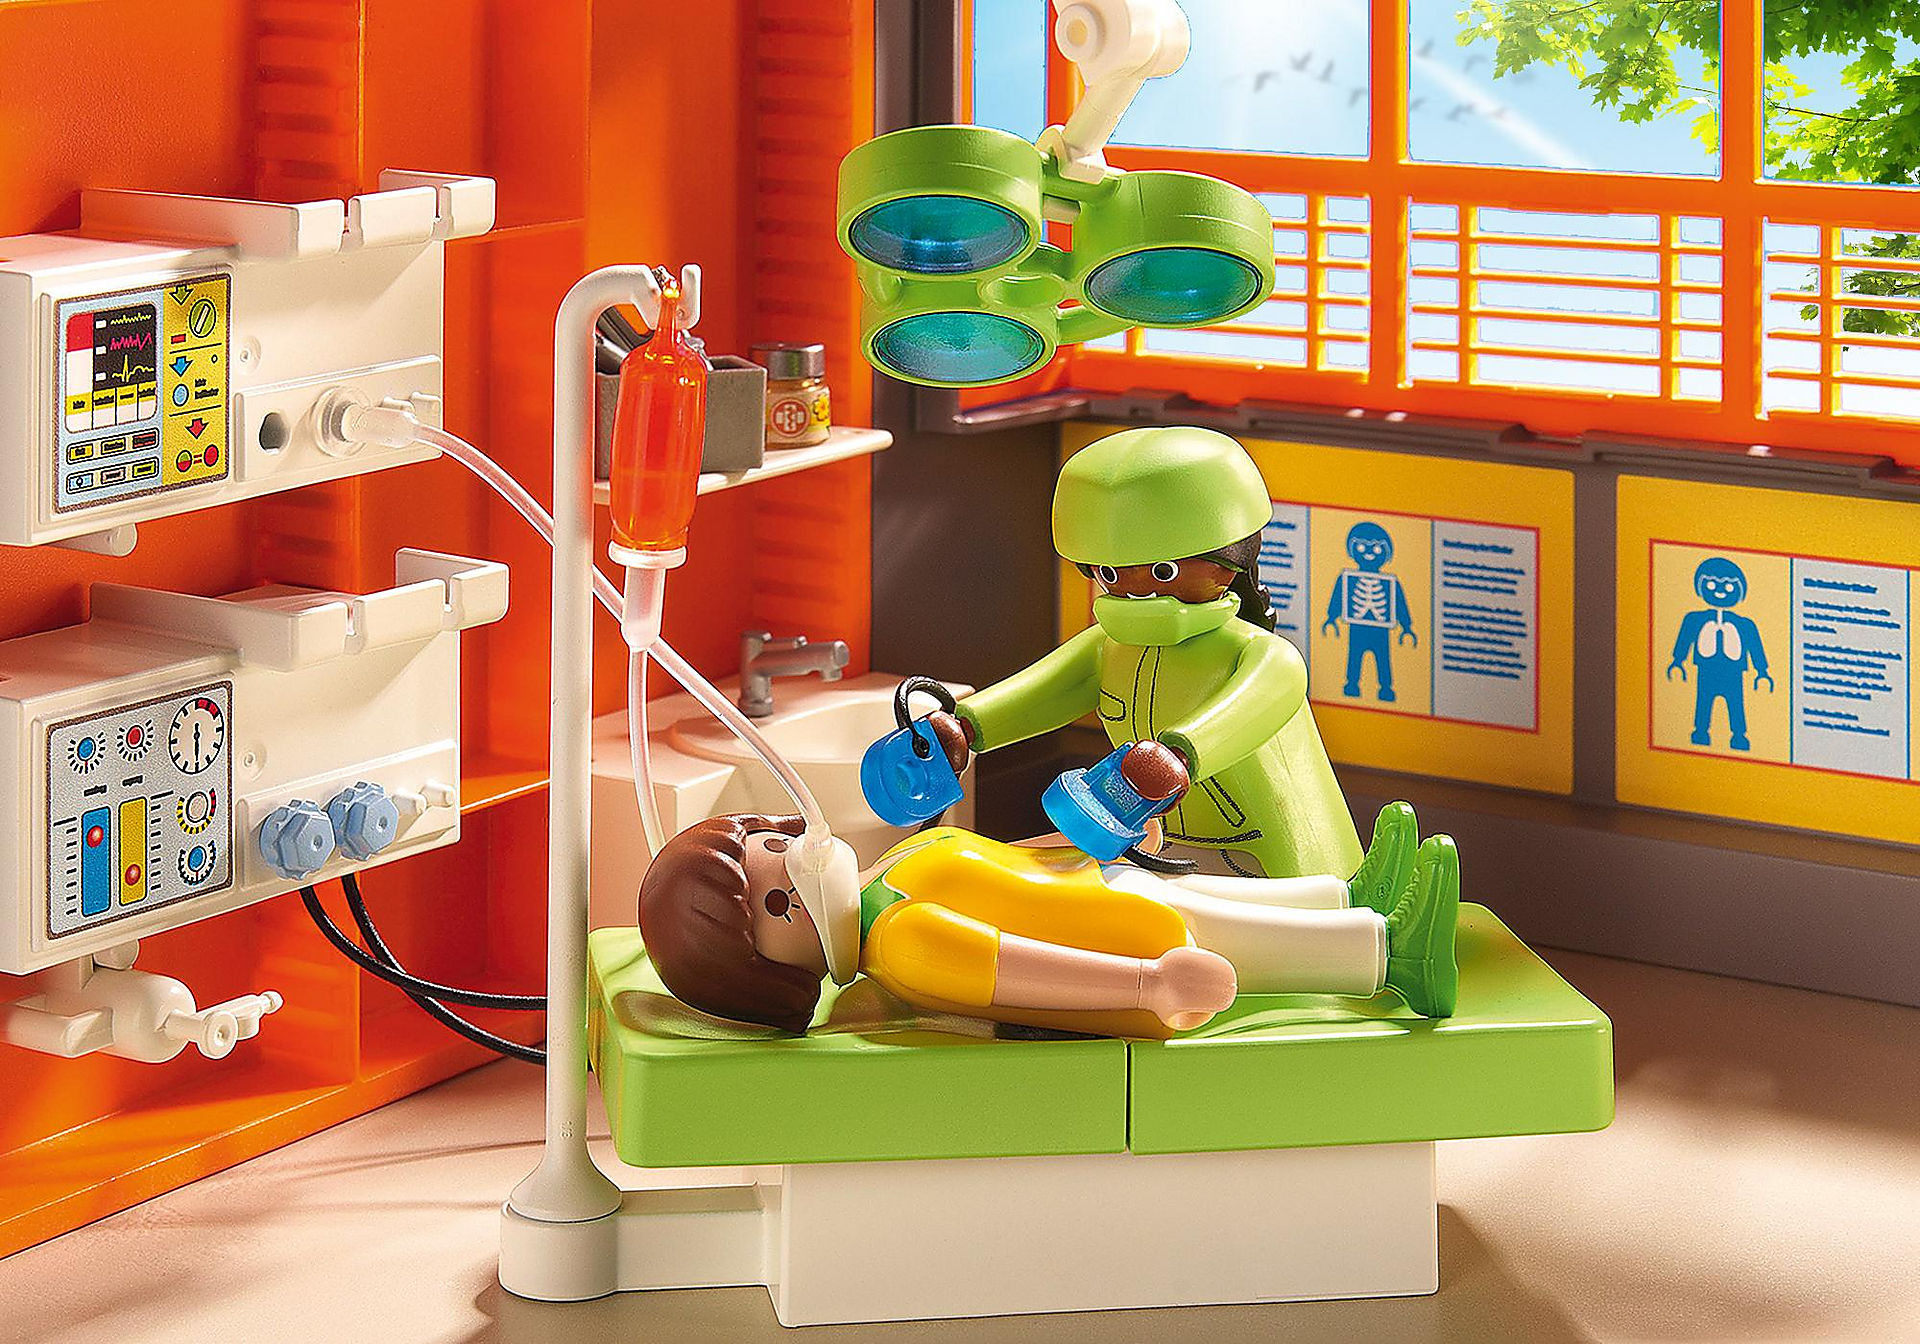 http://media.playmobil.com/i/playmobil/6657_product_extra1/Hospital Pediátrico